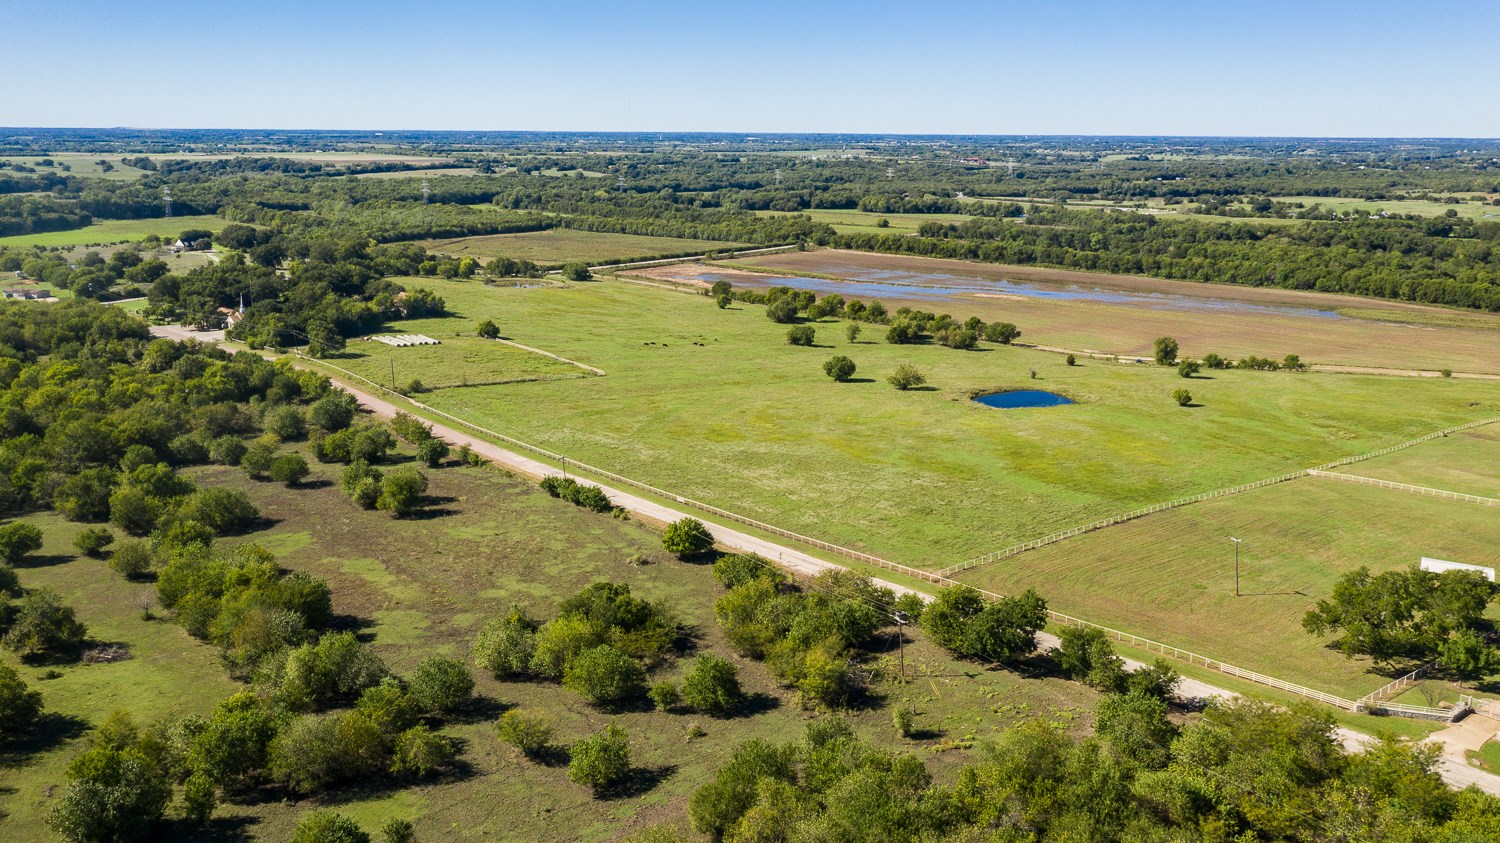 TX Farm Land for Sale East of McKinney with Homesites